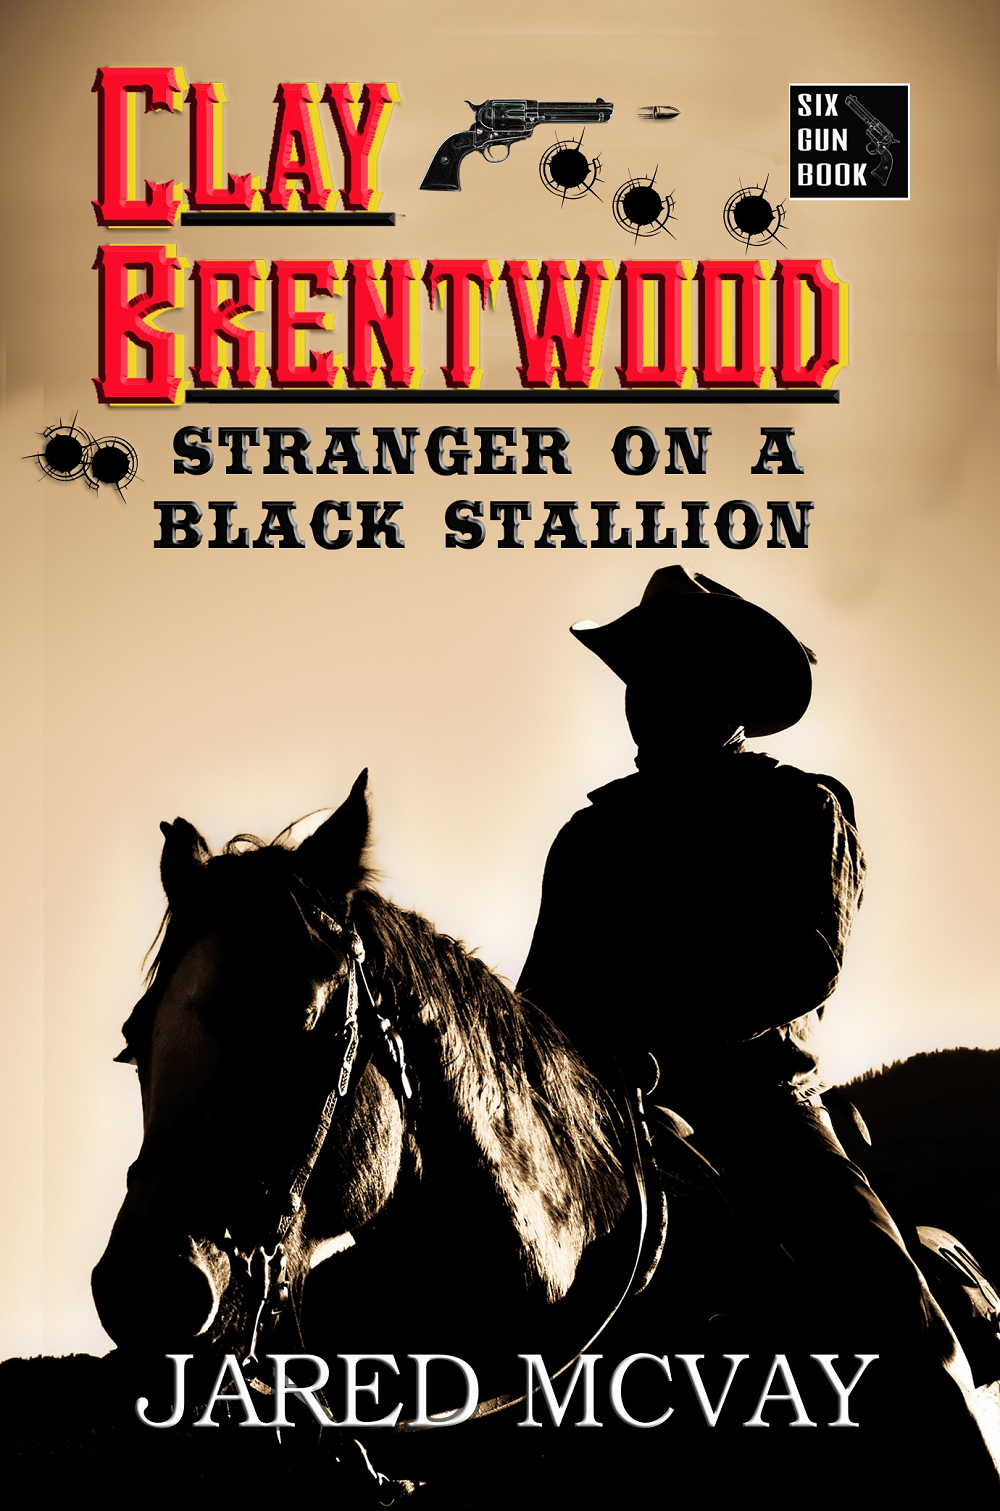 """Clay Brentwood: Stranger On A Black Stallion"""